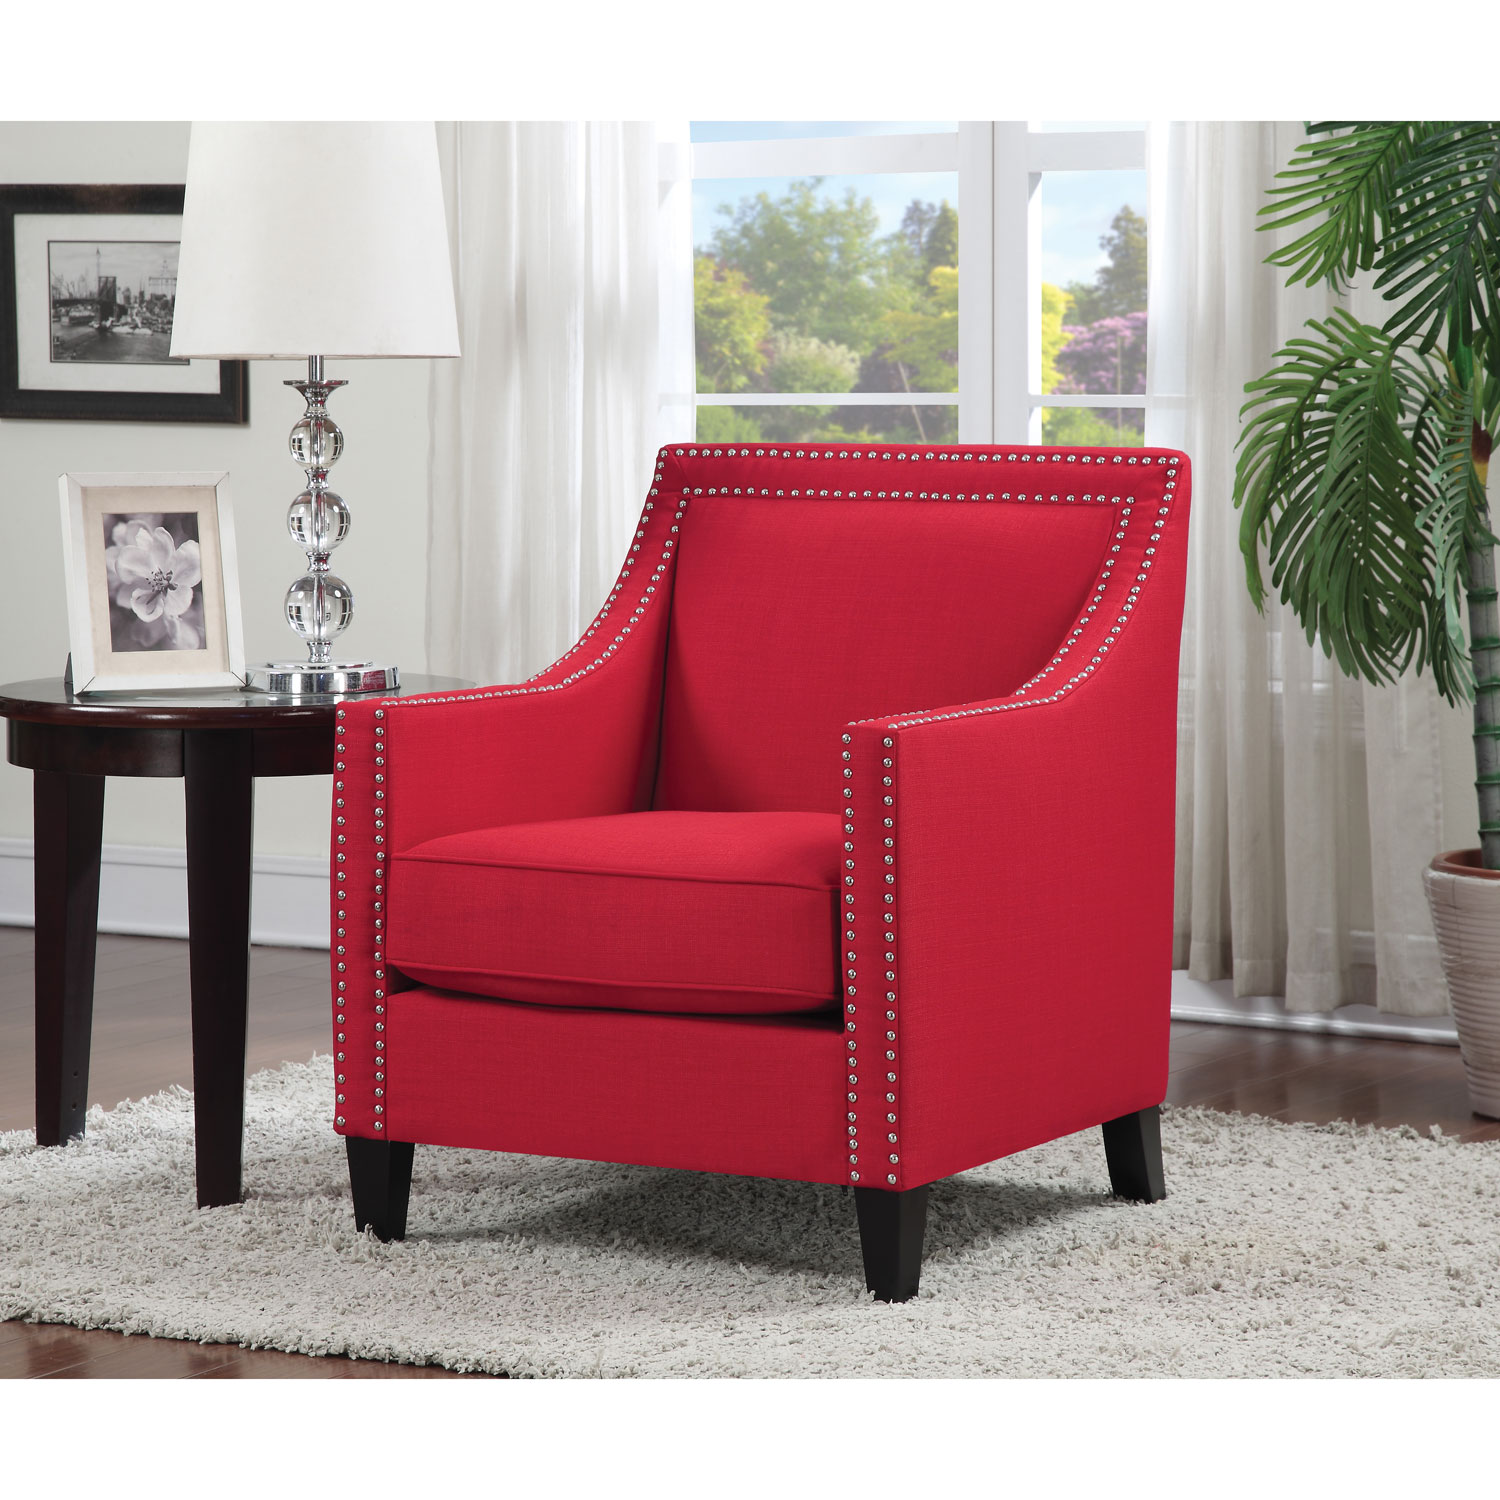 Awesome Red Accent Chairs Inspirational | Inmunoanalisis.com